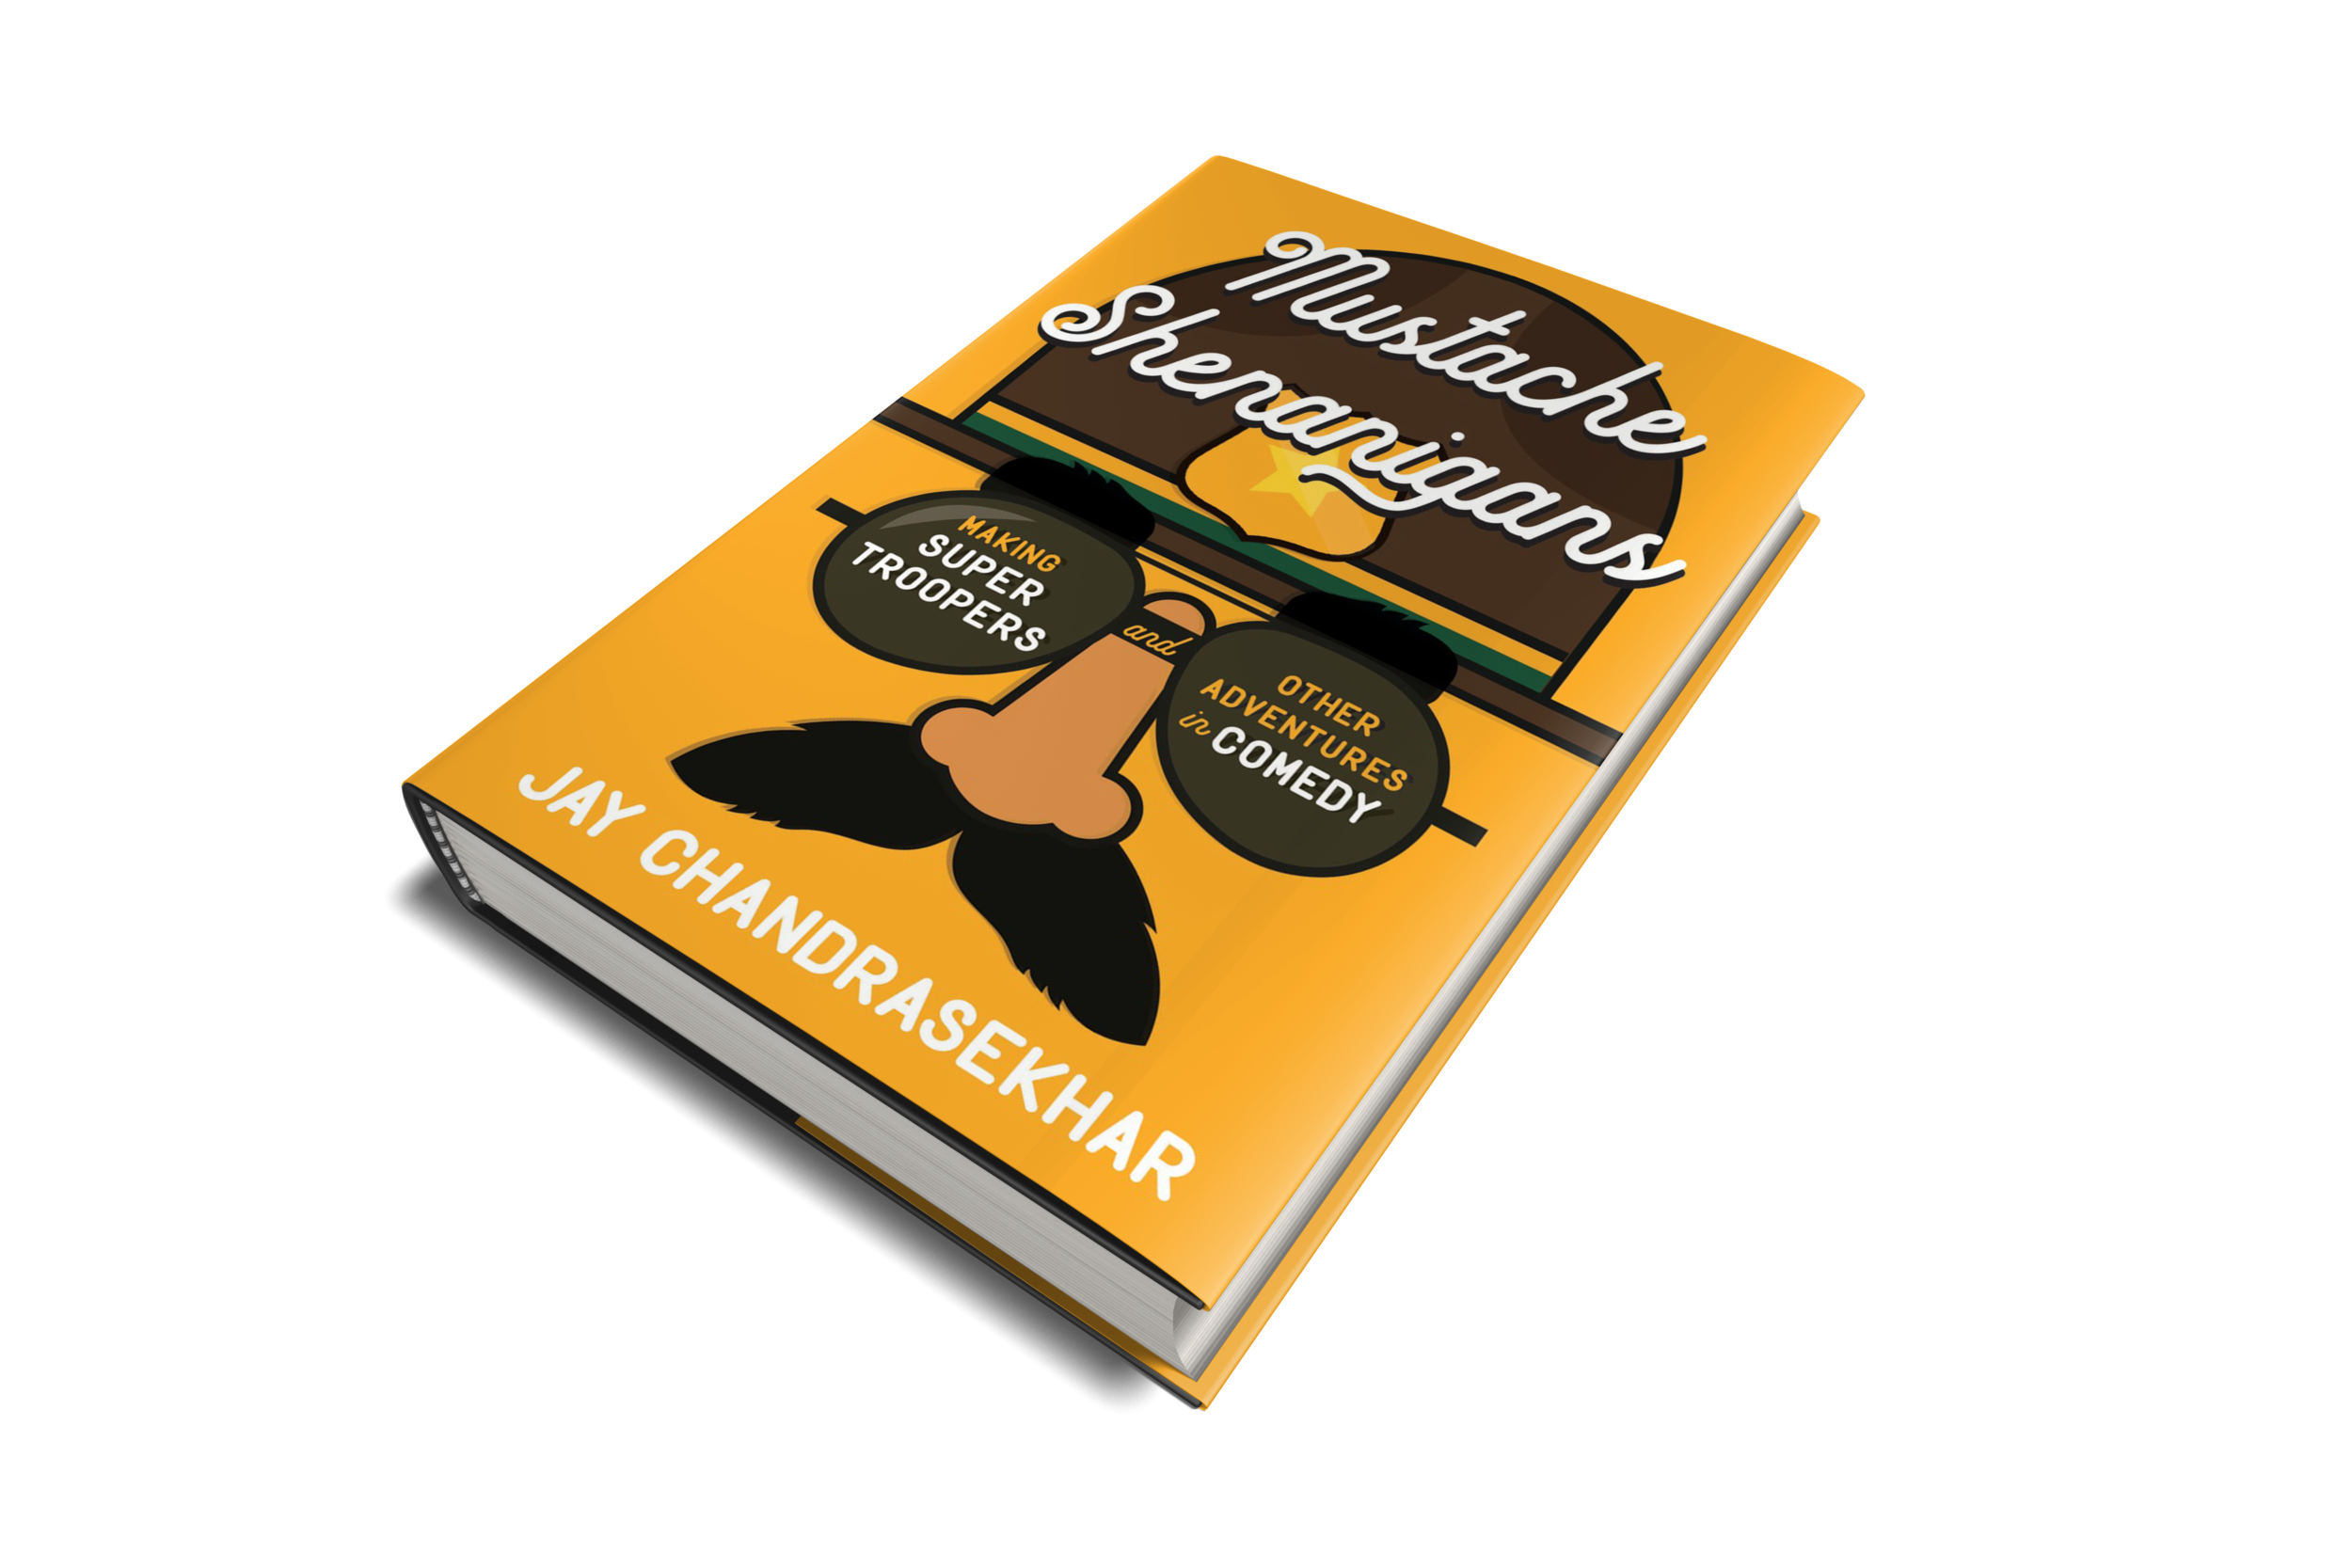 MUStache shenanigans - Get a copy of Jay's book and he'll sign it for you… or even write a personalized message!